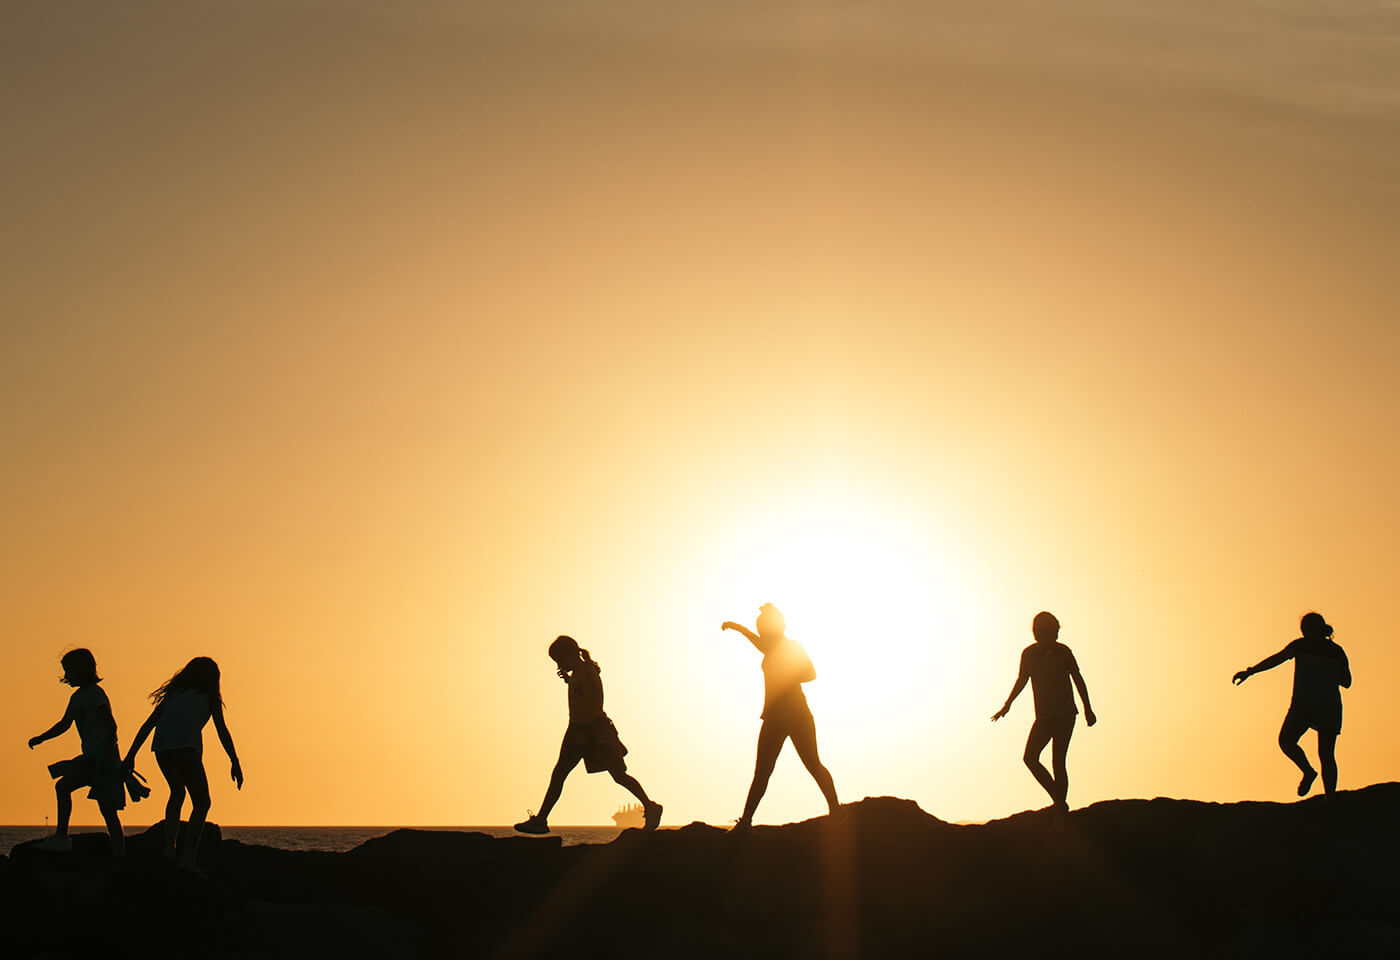 Silhouettes of children walking with sunrise in the background